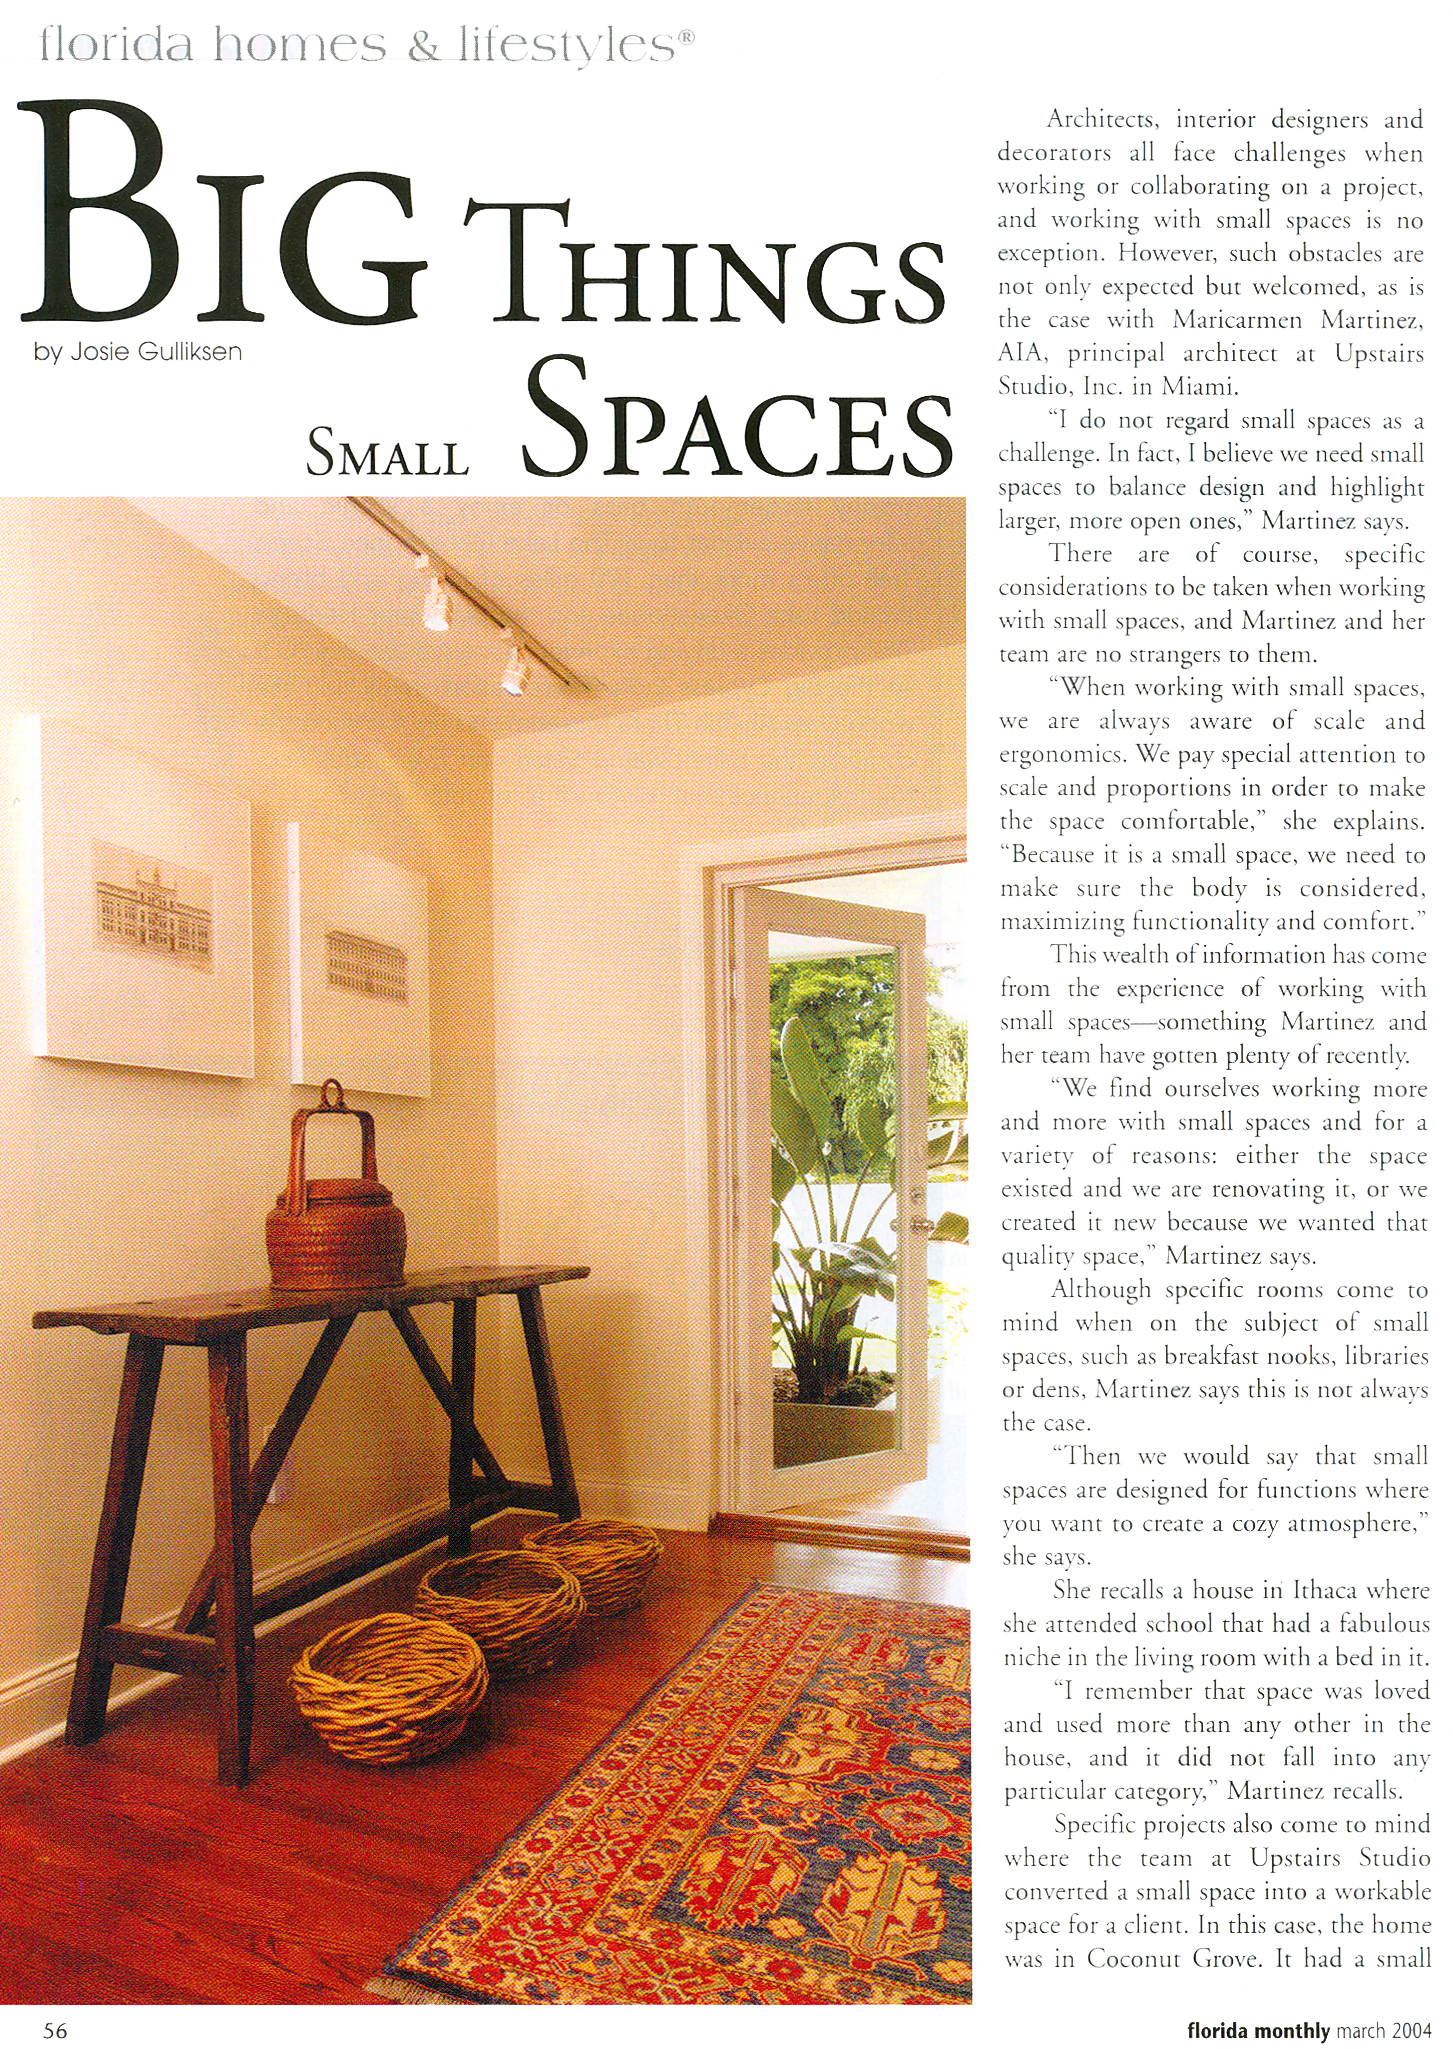 FL Monthly page1 March 2004 copy.jpg